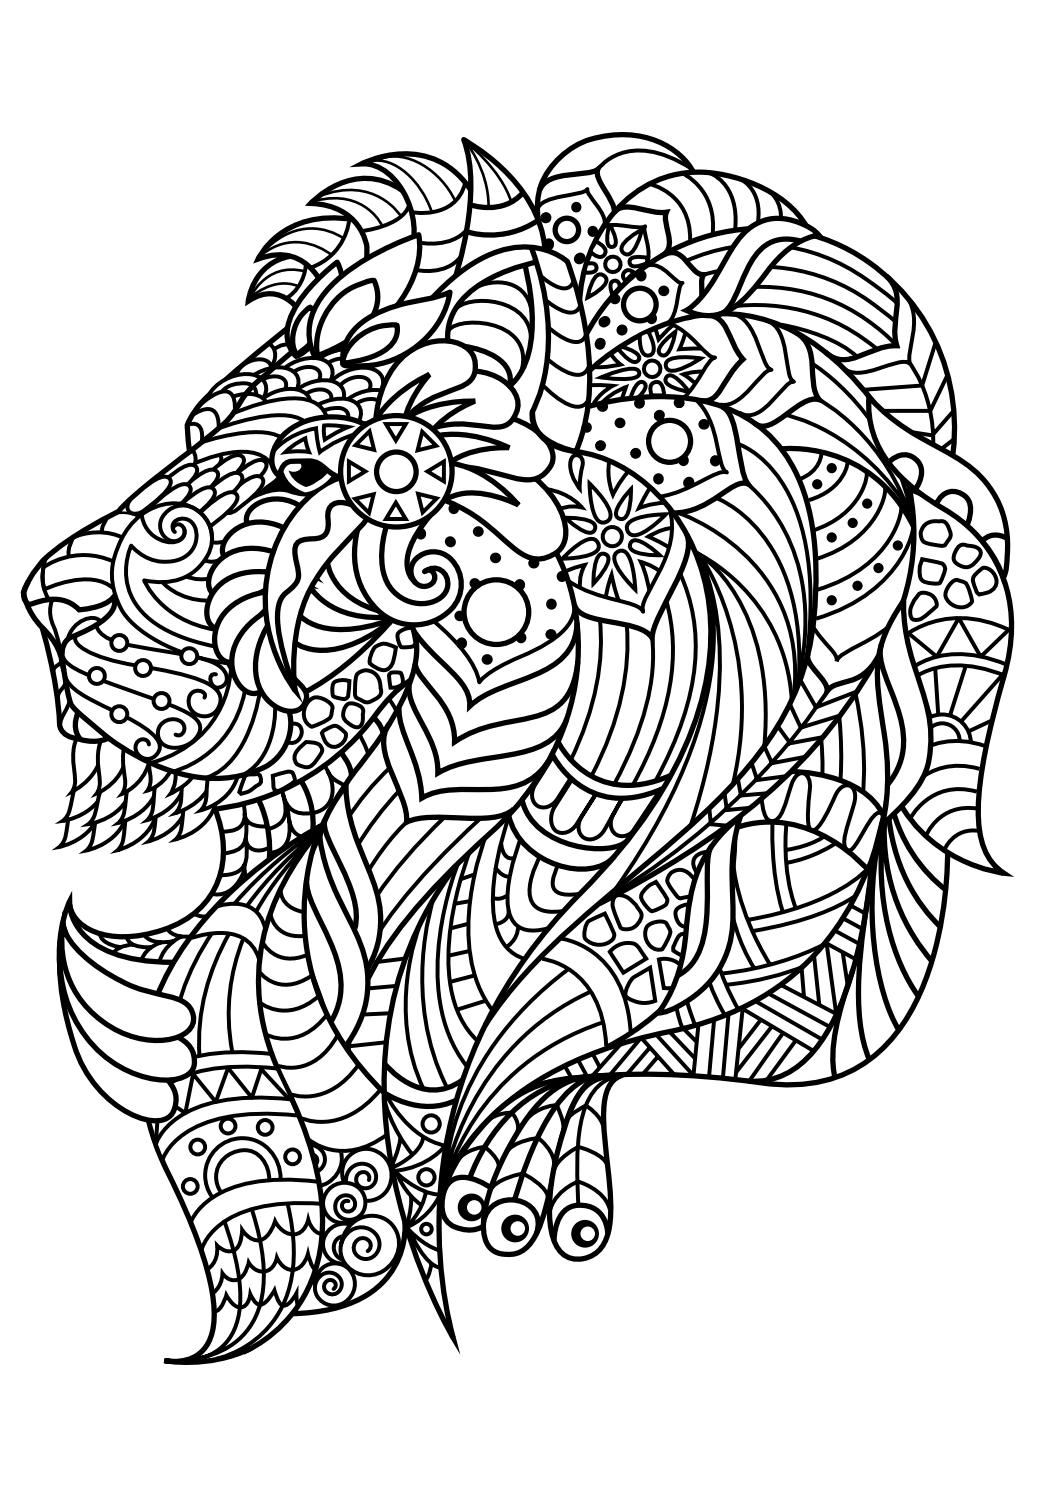 Animal coloring pages pdf by Marko Petkovic - Issuu